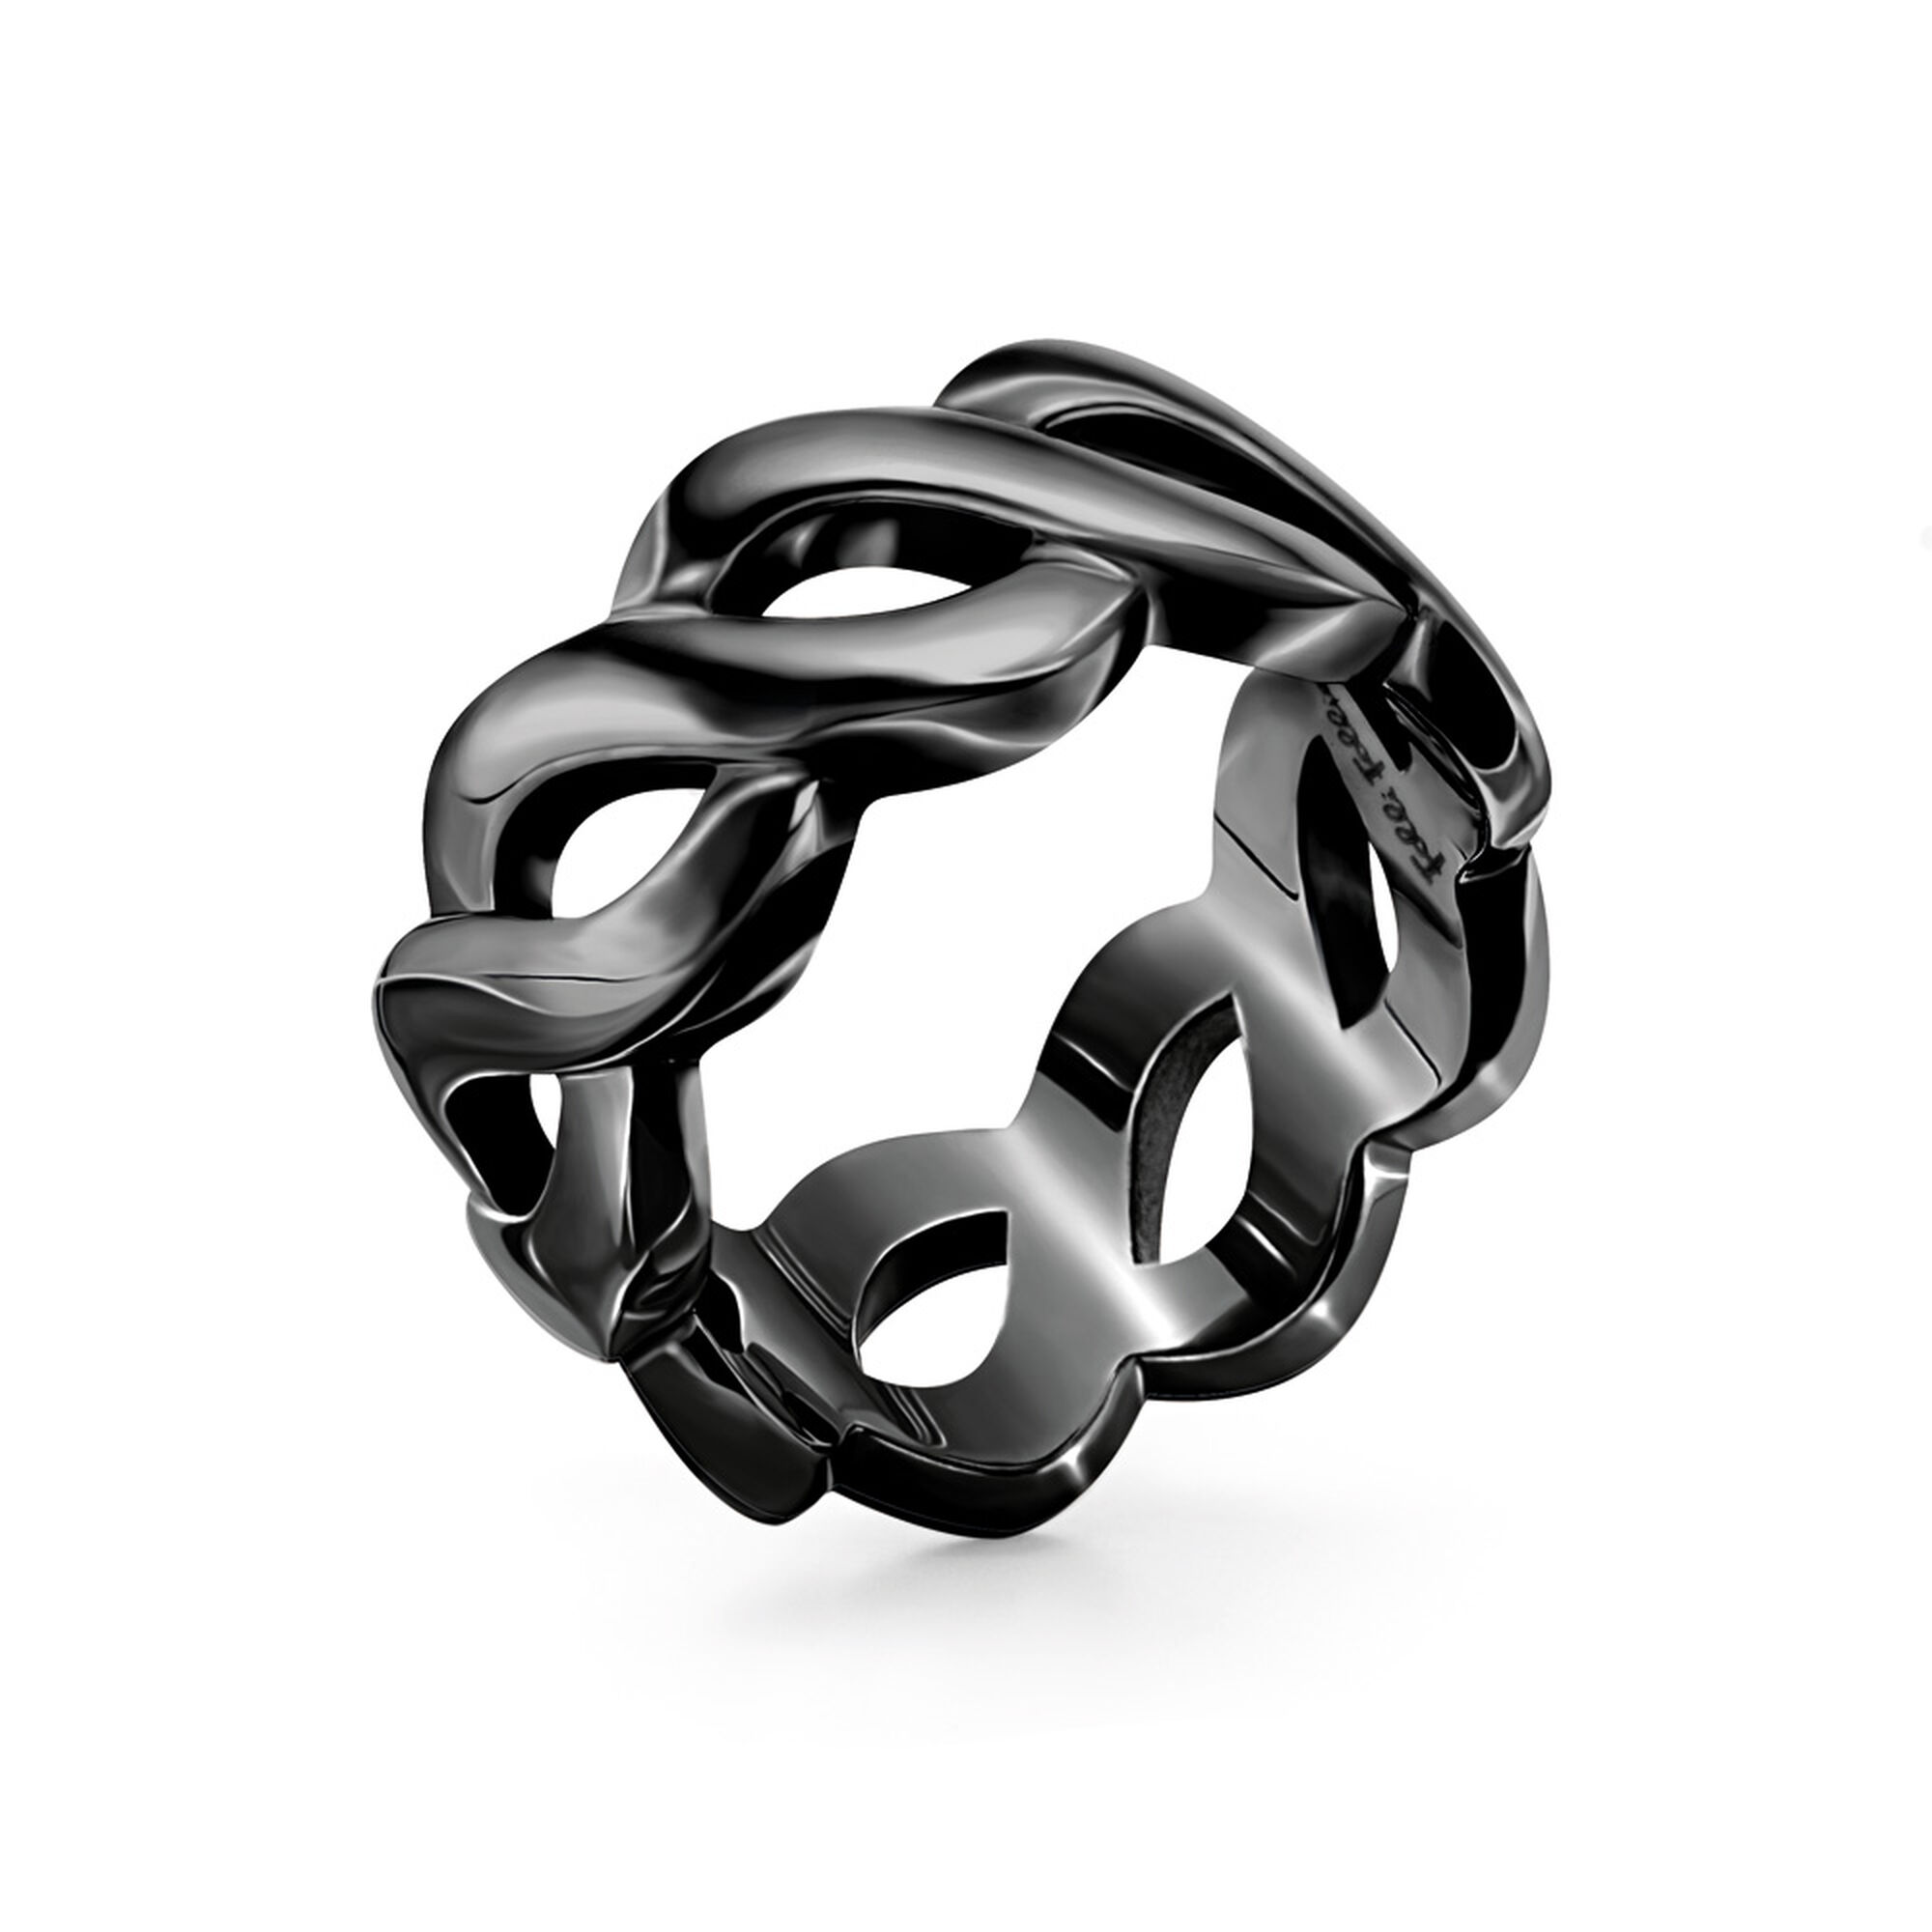 jewelry band rings bling sgd black nuestro prayer lords steel ring padre spinner stainless